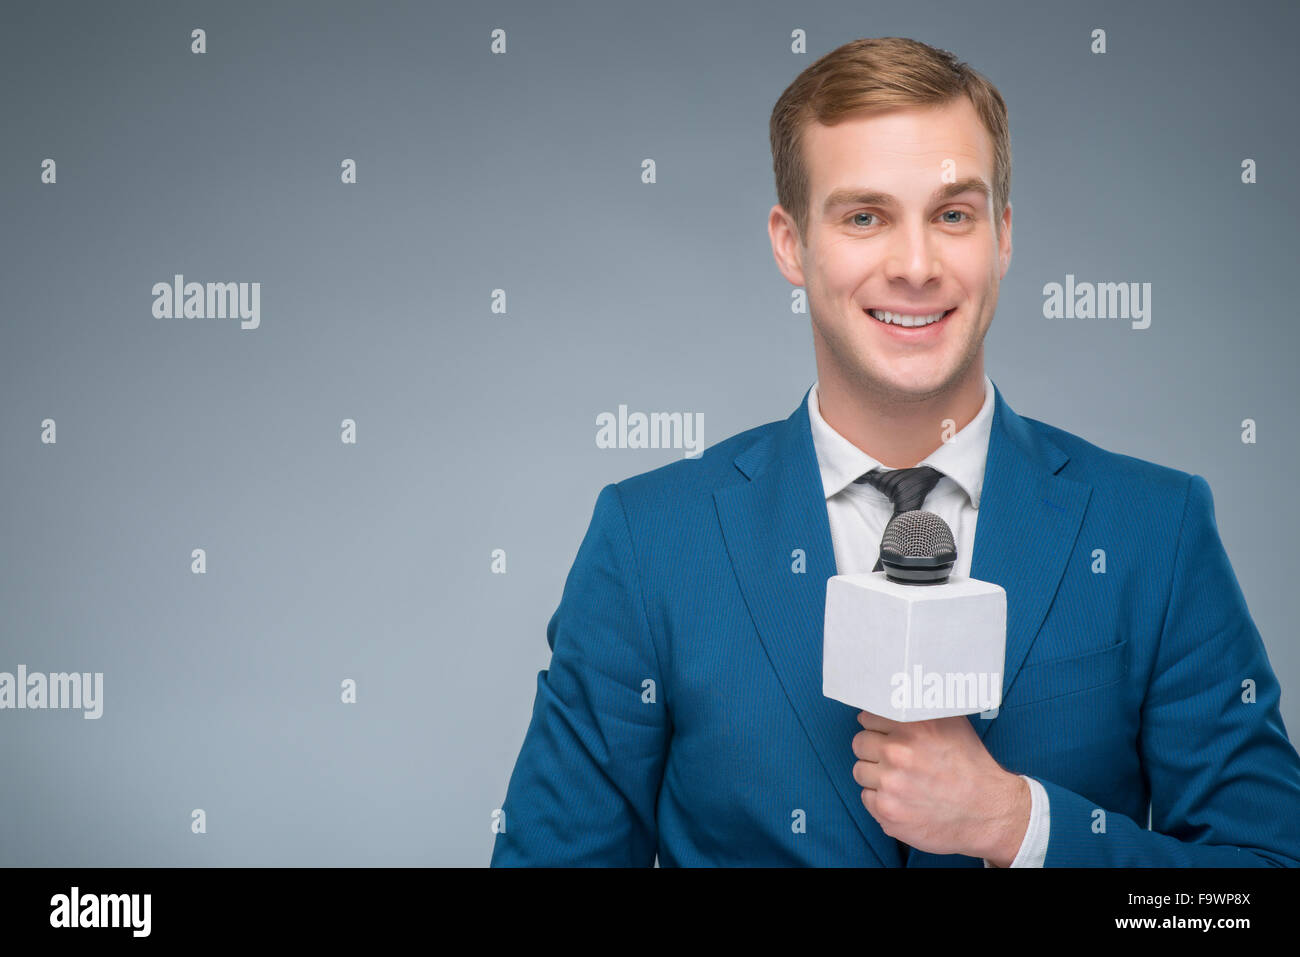 Smiling newsman holding a microphone. - Stock Image